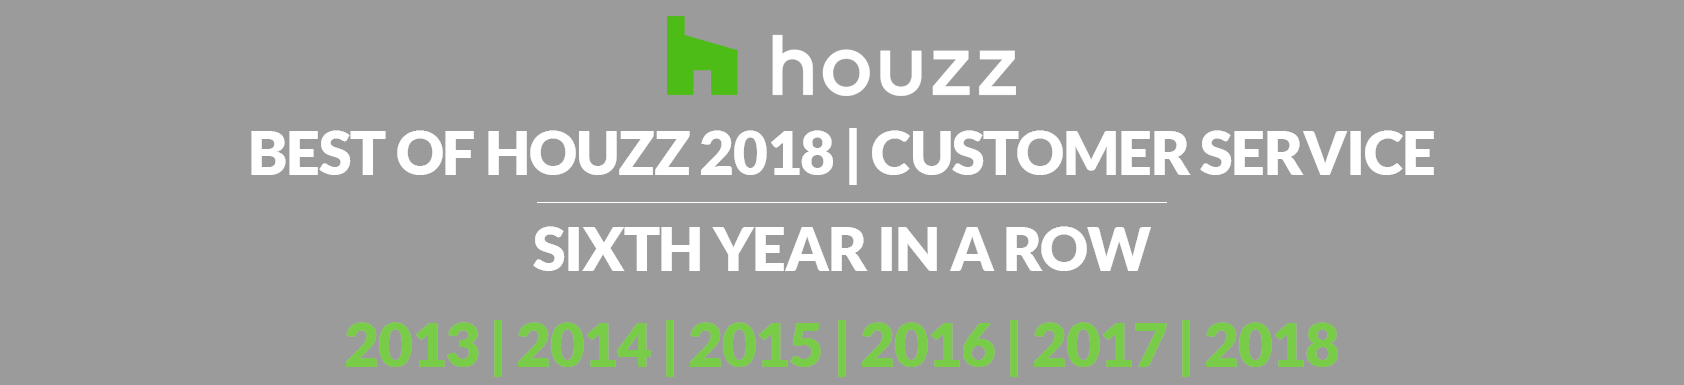 houzz best of 2018 customer service